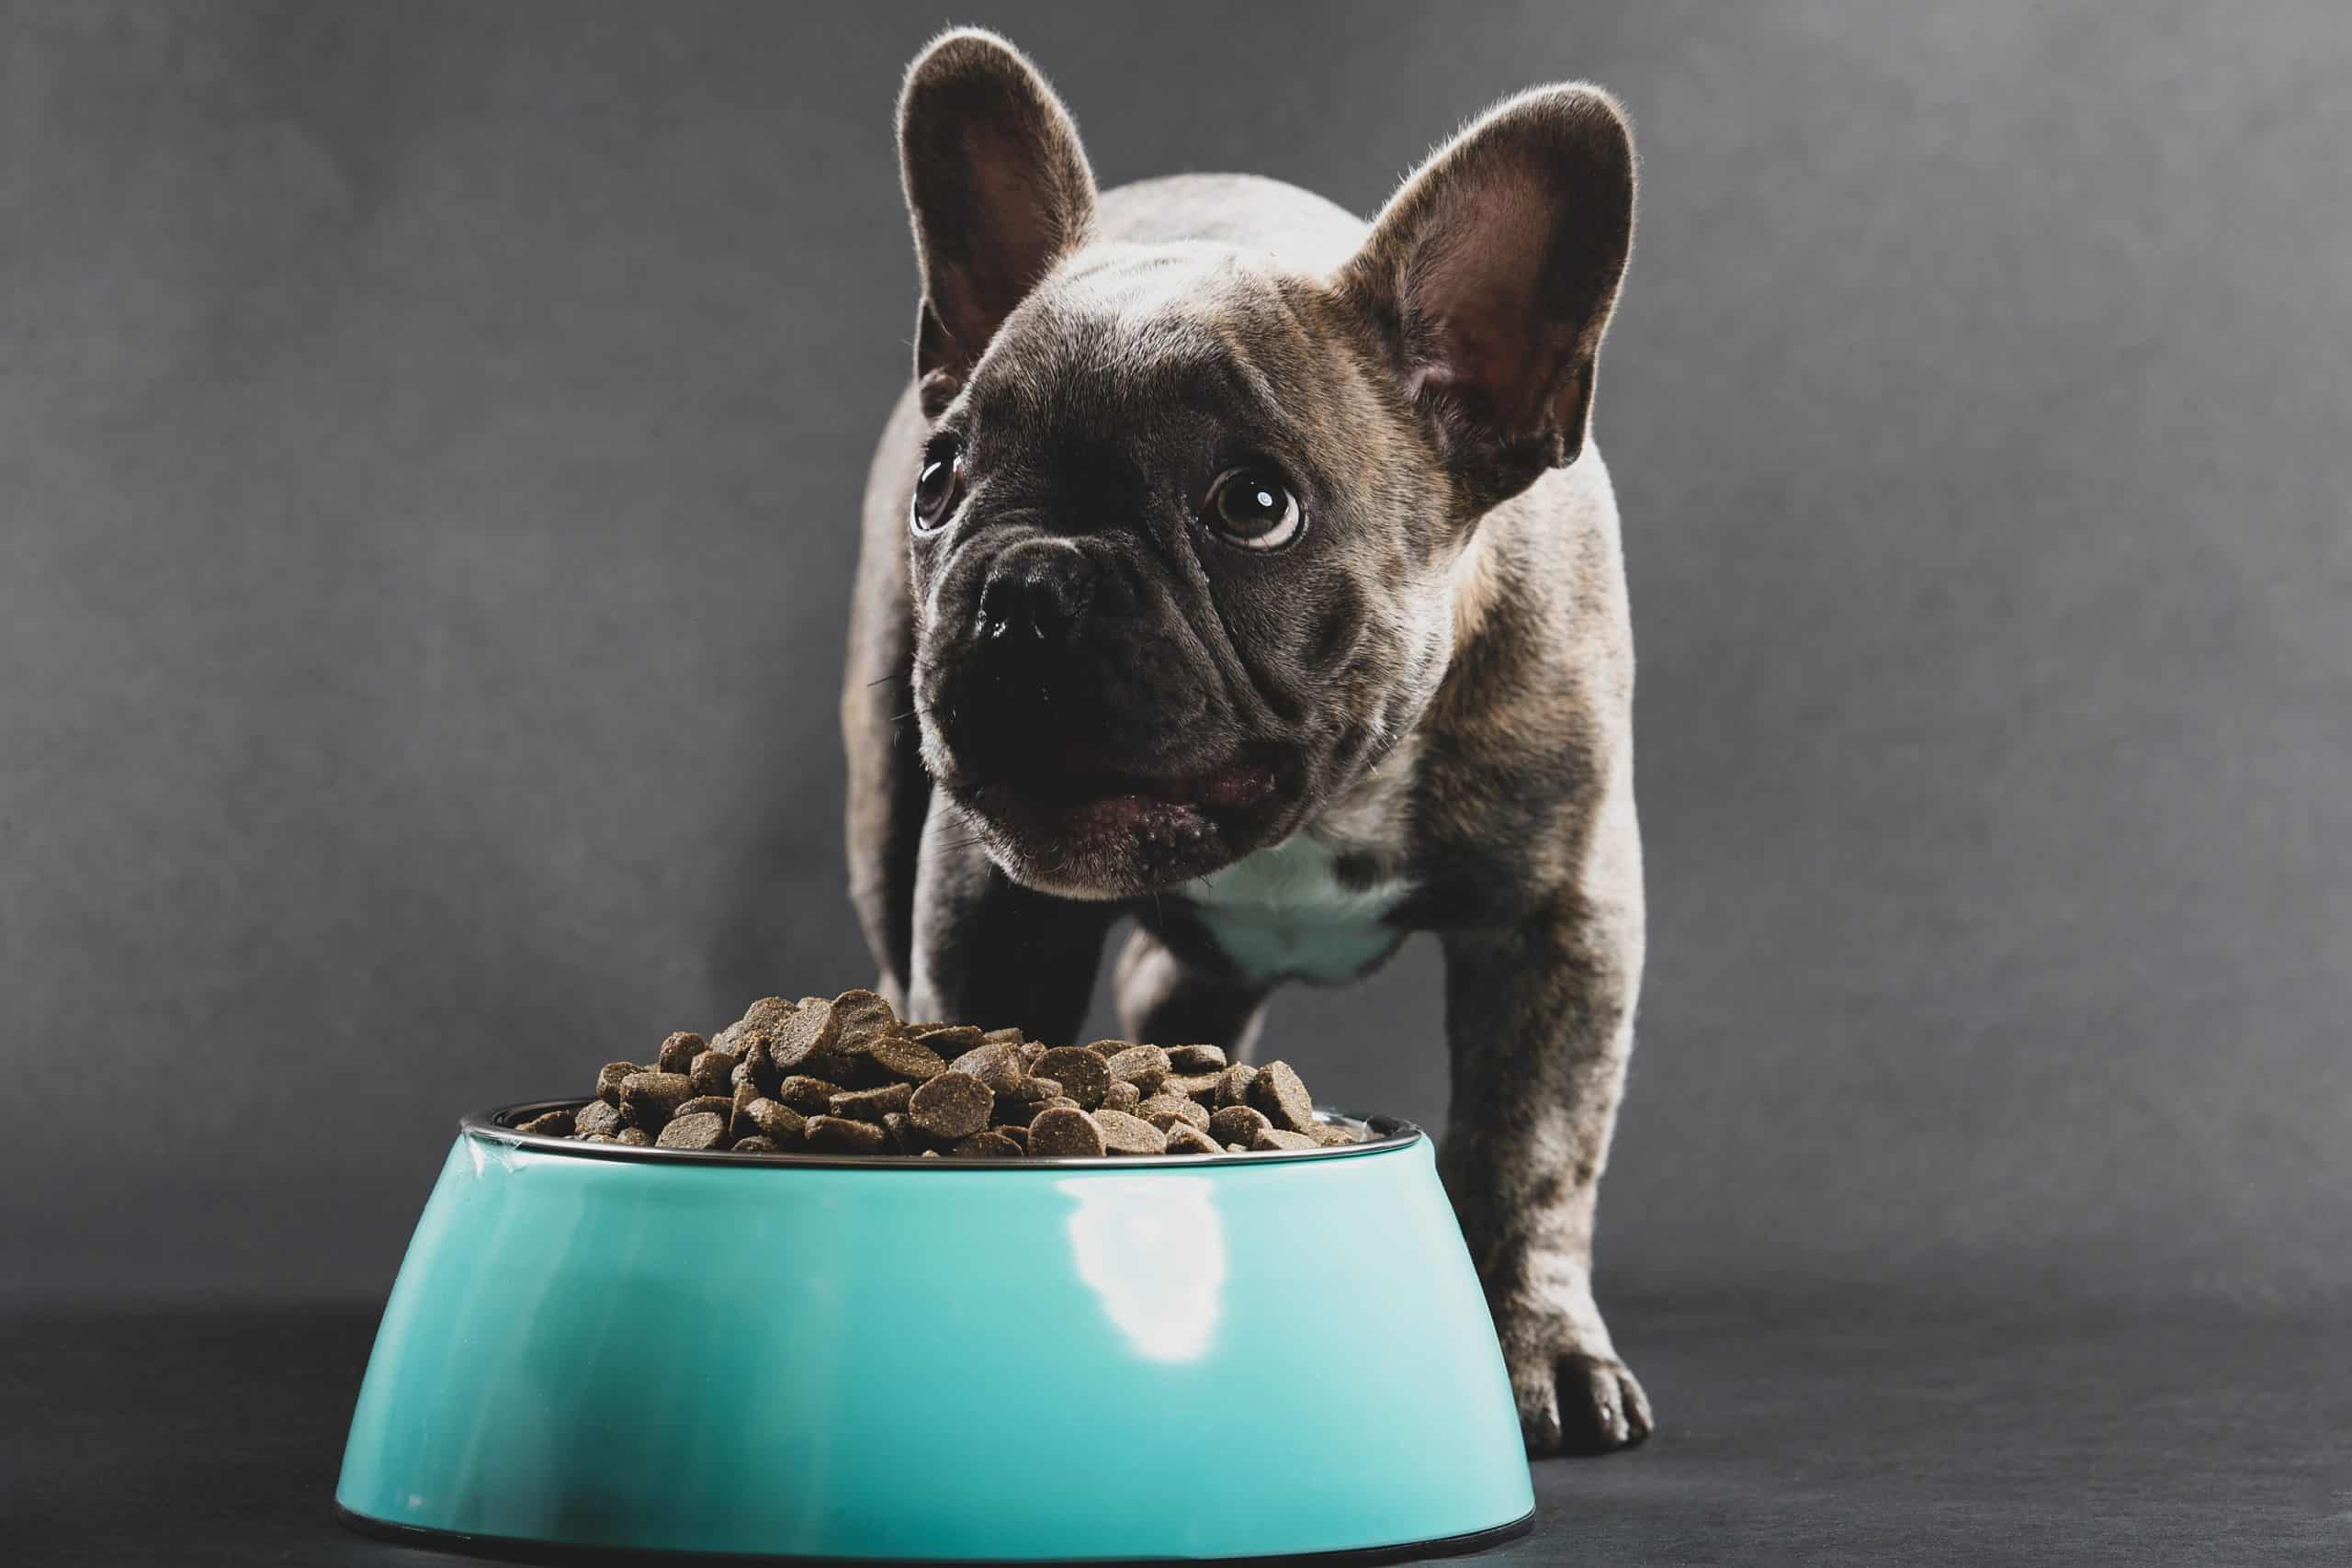 French bulldog puppy eats from aqua food bowl. Do research to ensure you are feeding your puppy not only the best food but also the right amount.